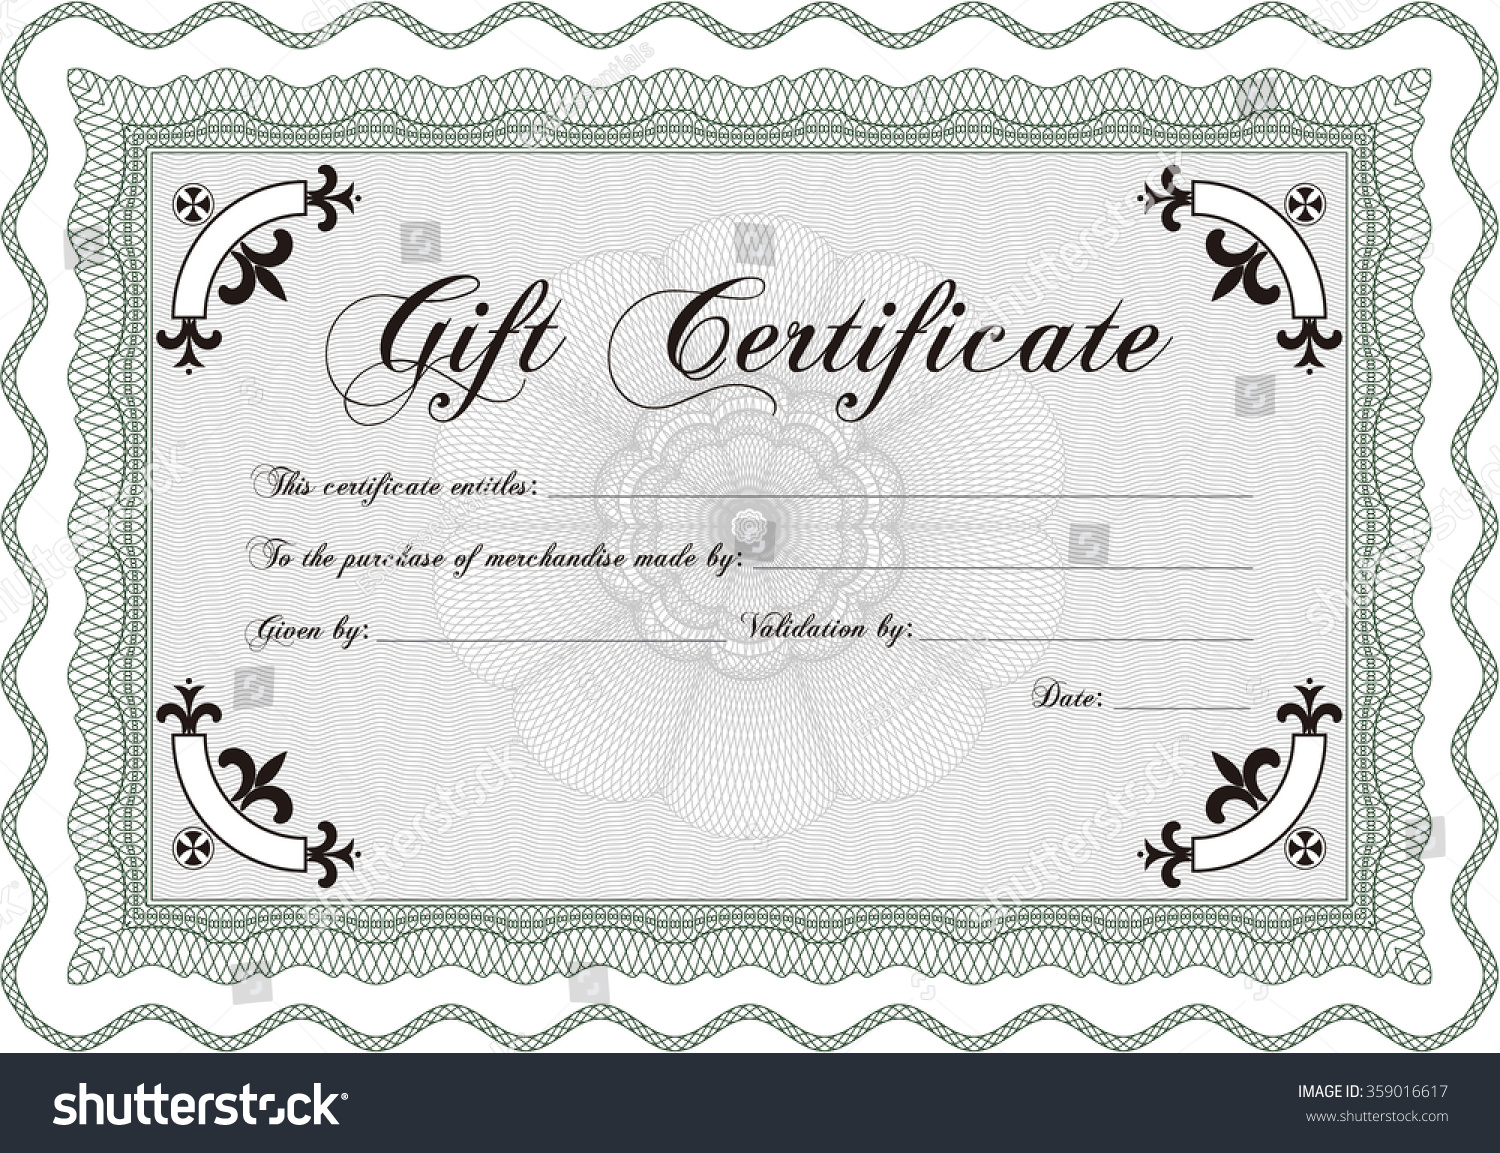 Gift certificate template customizable easy edit stock for Customizable certificate template